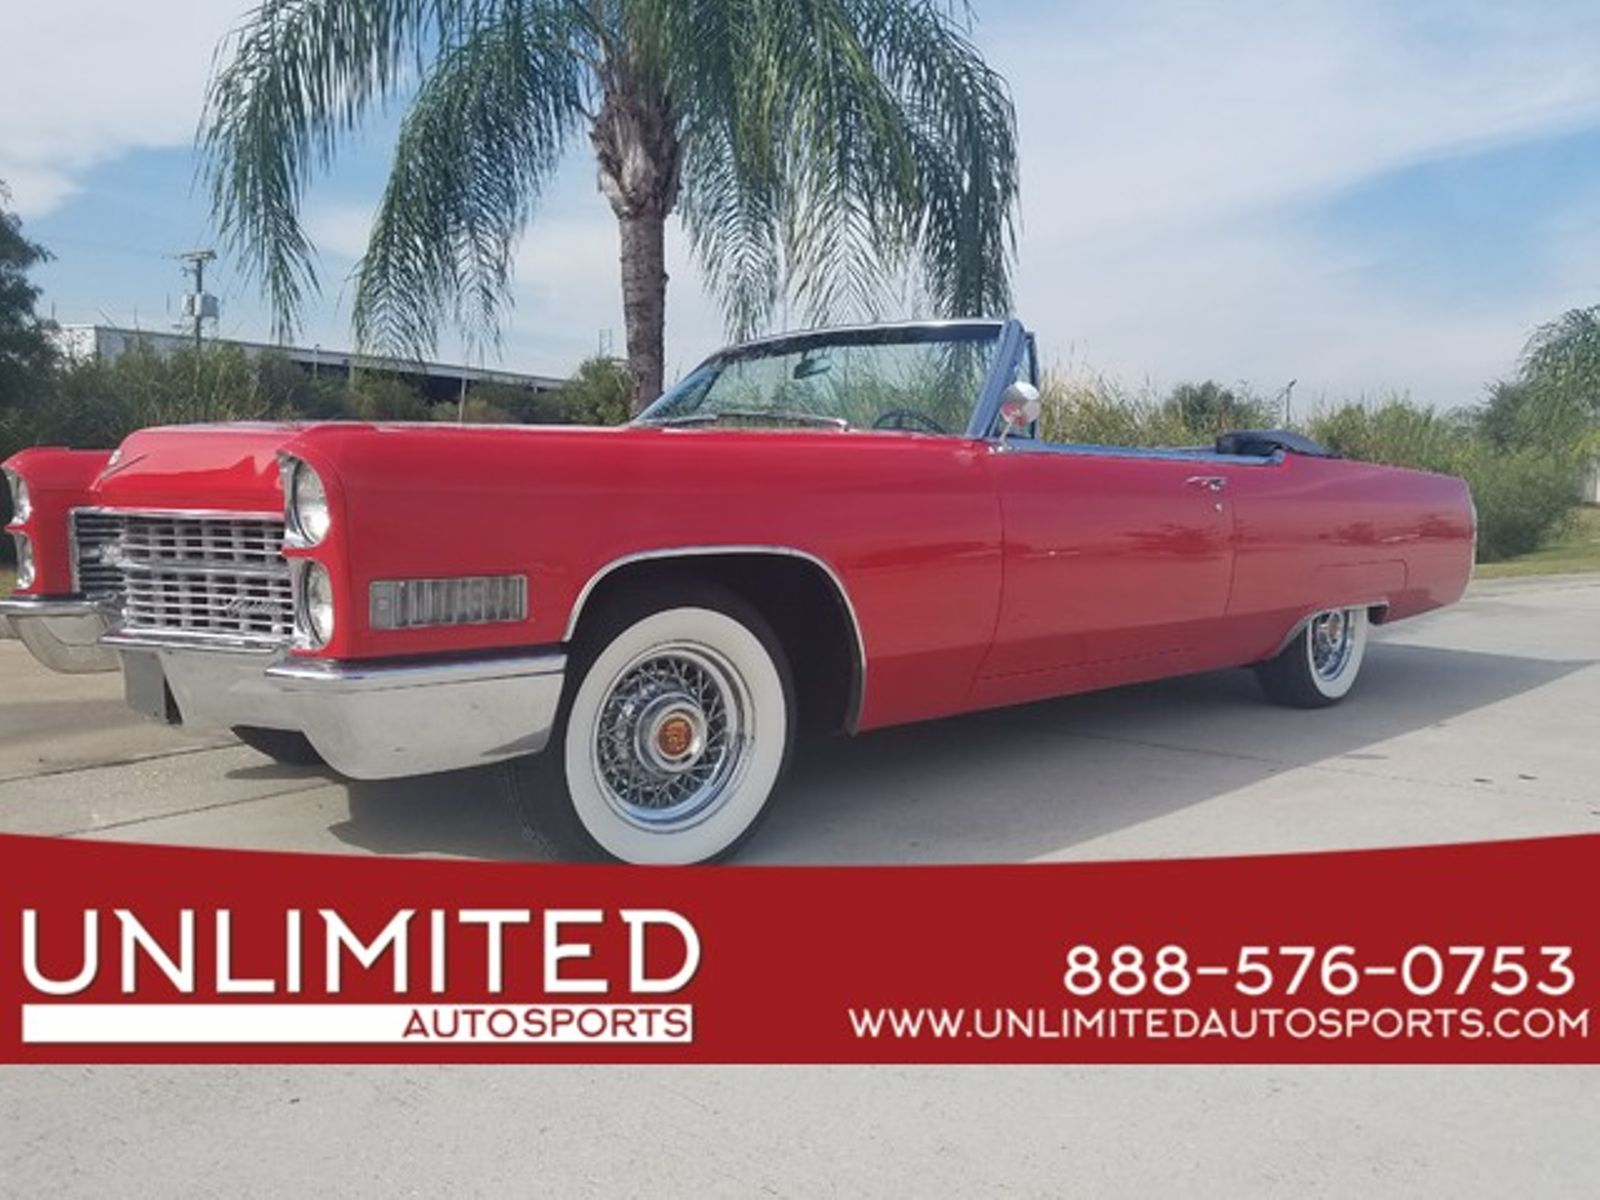 1966 Cadillac DEVILLE CONVERTIBLE city FL Unlimited Autosports